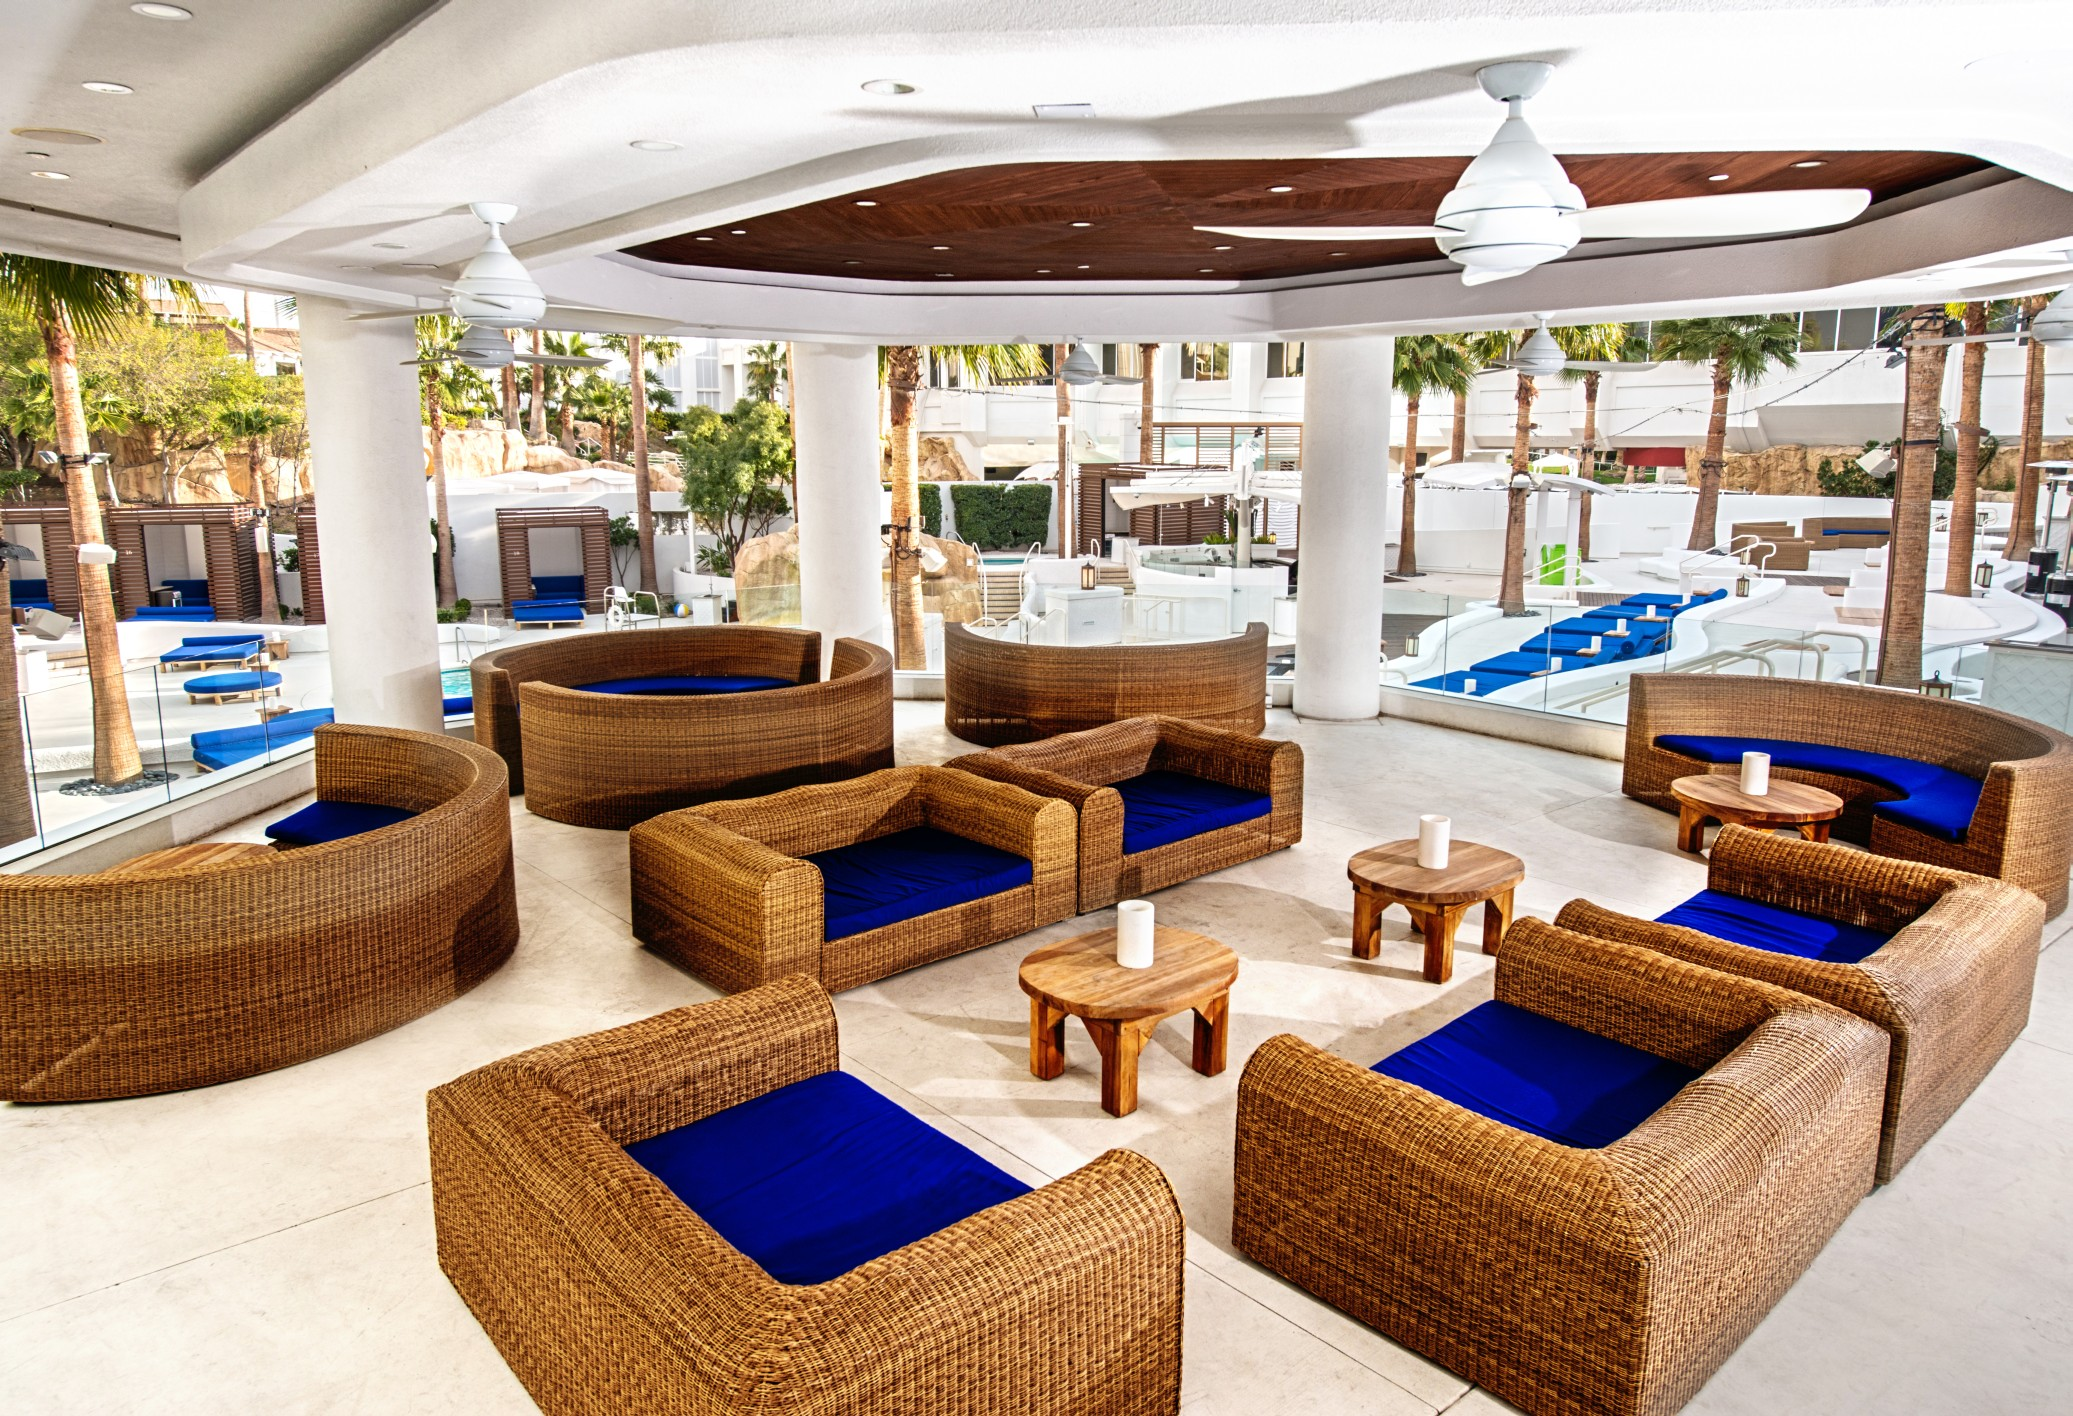 Beach Club - veranda